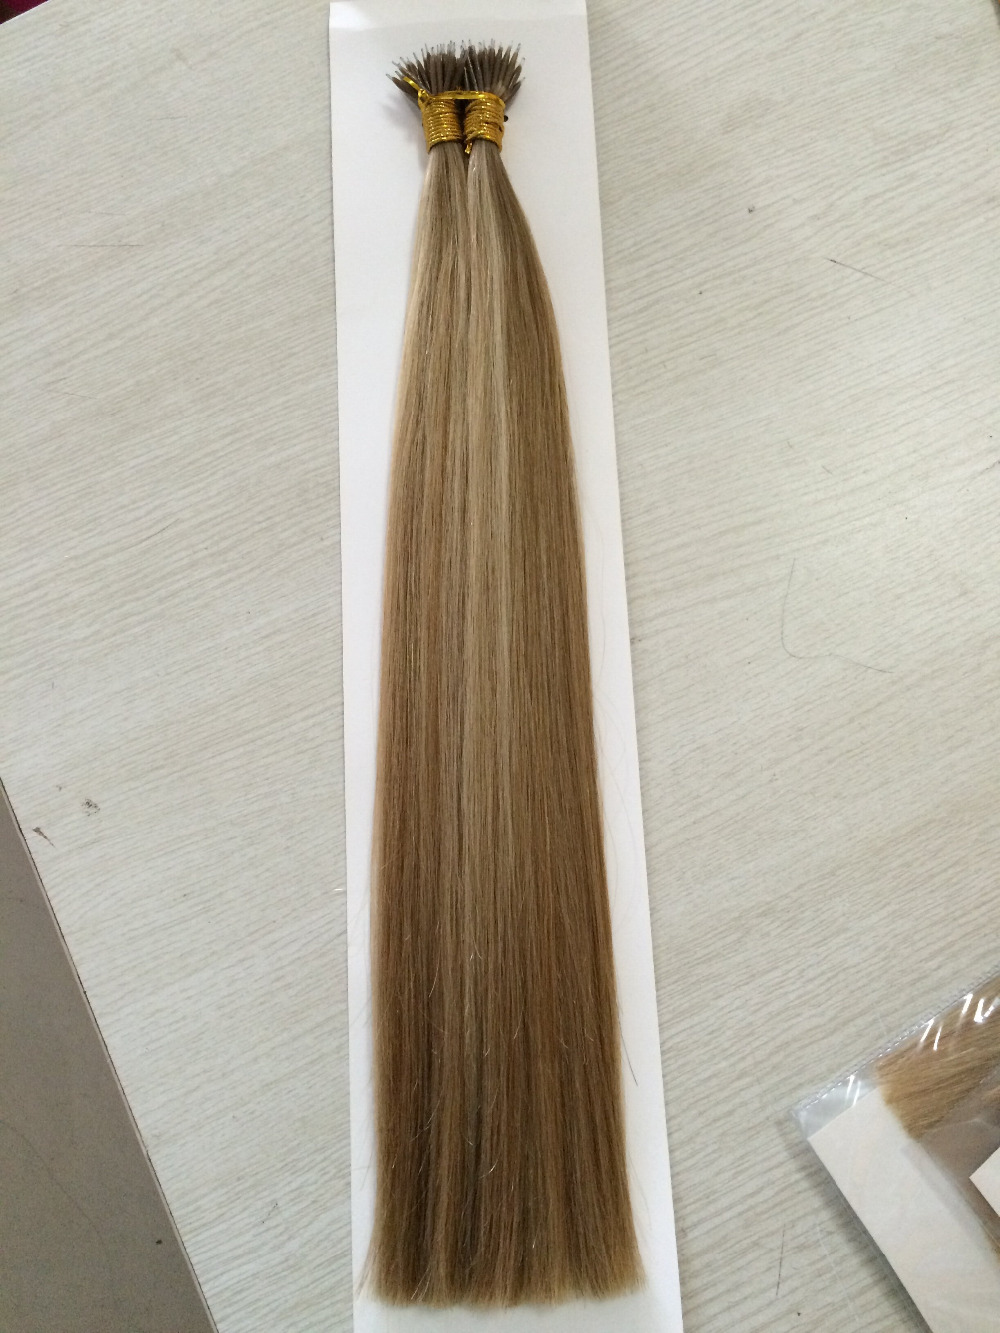 Wholesale nano ring hair extensions russian virgin remy, nano ring hair extensions 7a